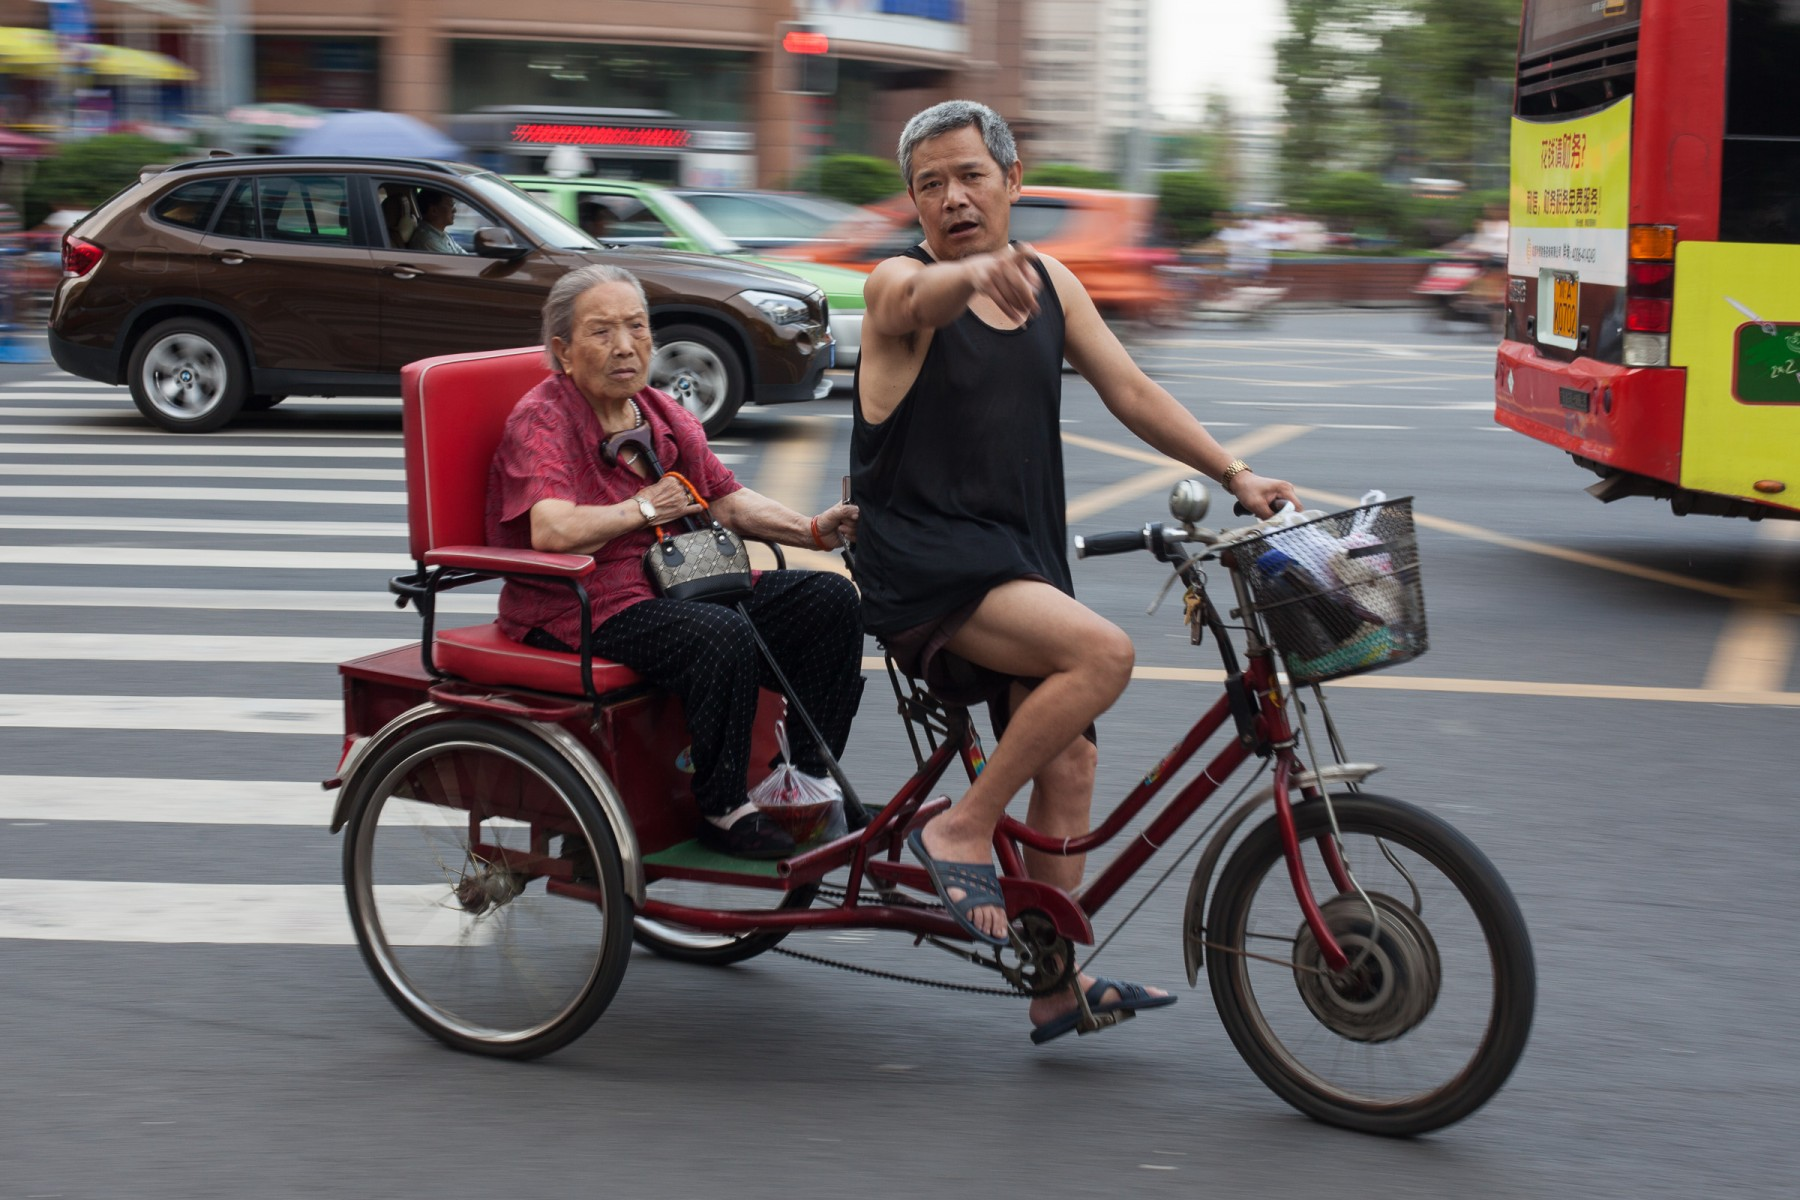 Tricycle on the streets of Chengdu, Sichuan, China